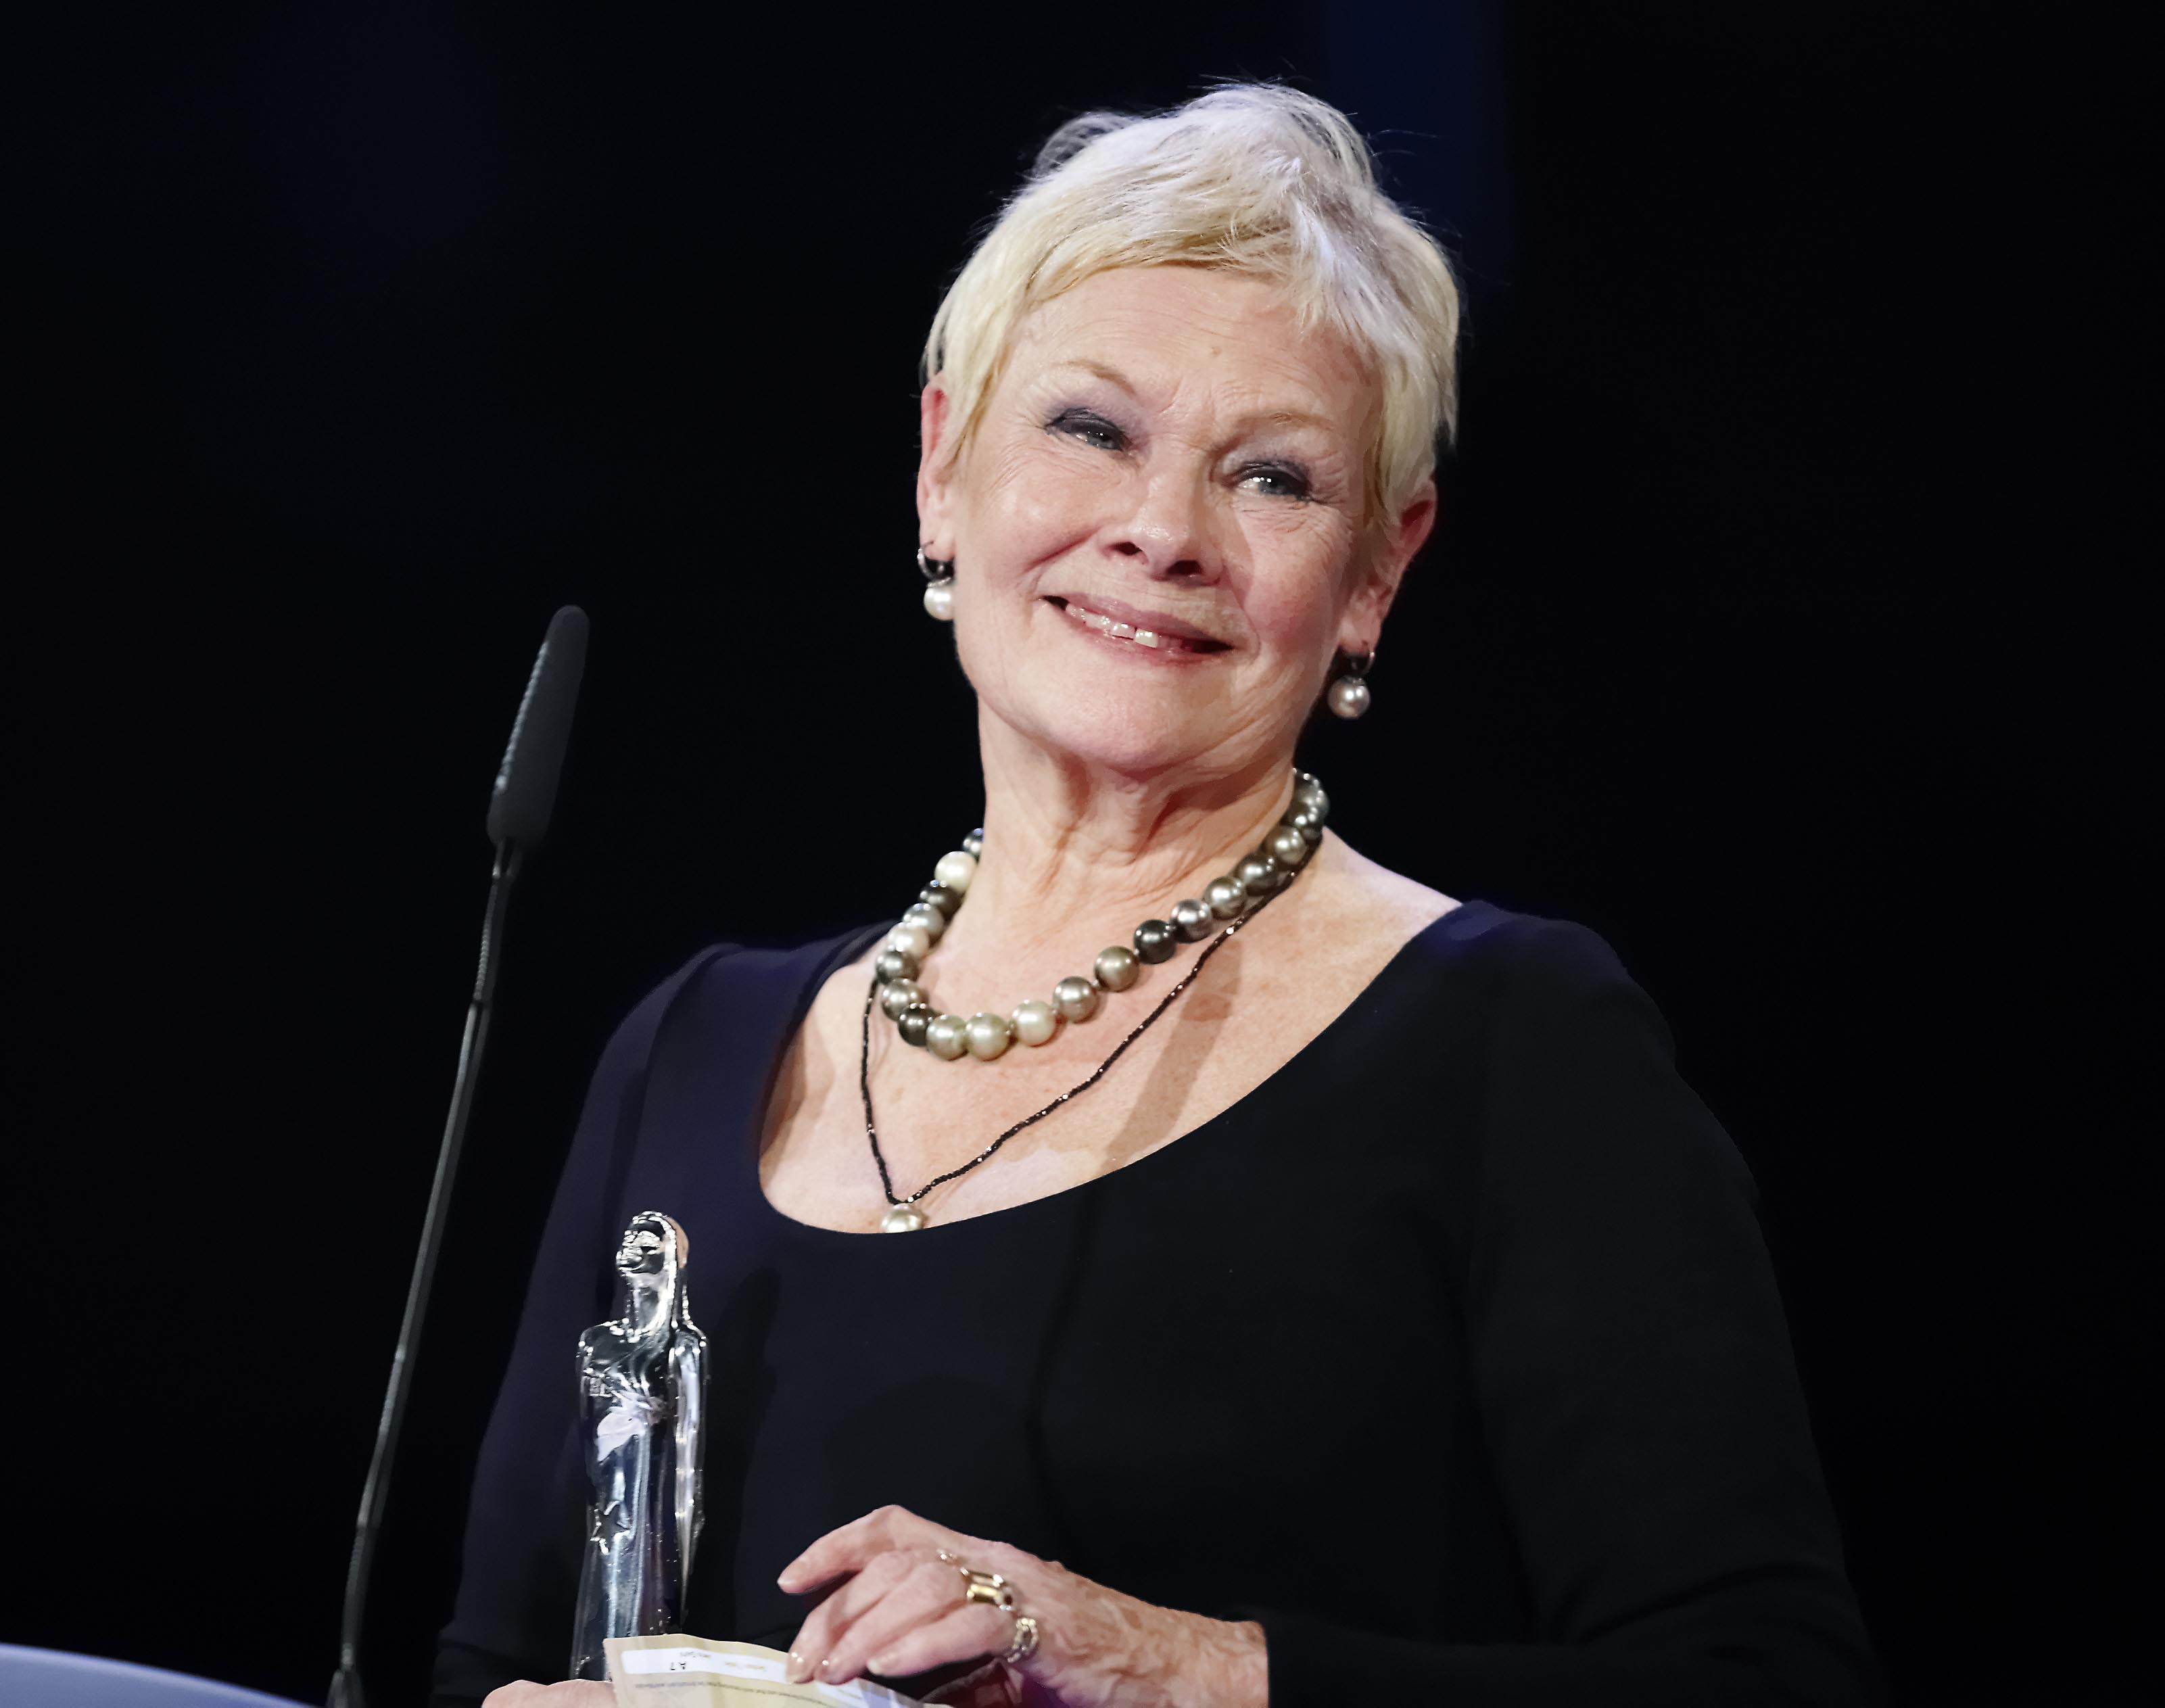 Judi Dench: photos, filmography, biography and details of his personal life 63